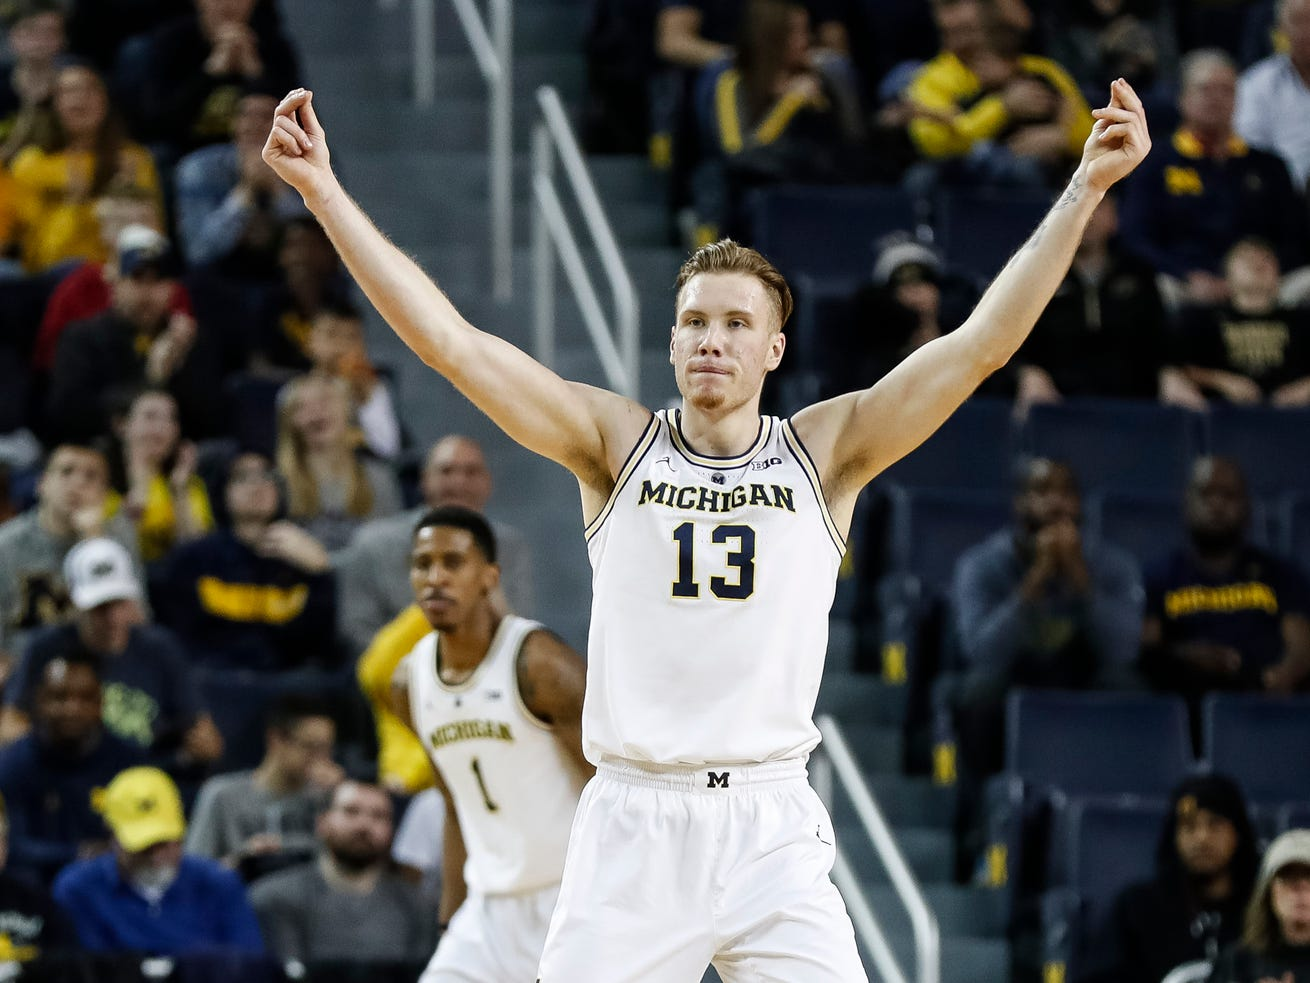 Michigan forward Ignas Brazdeikis (13) celebrates a 3-pointer during the first half against Purdue at Crisler Center on Saturday, Dec. 1, 2018.